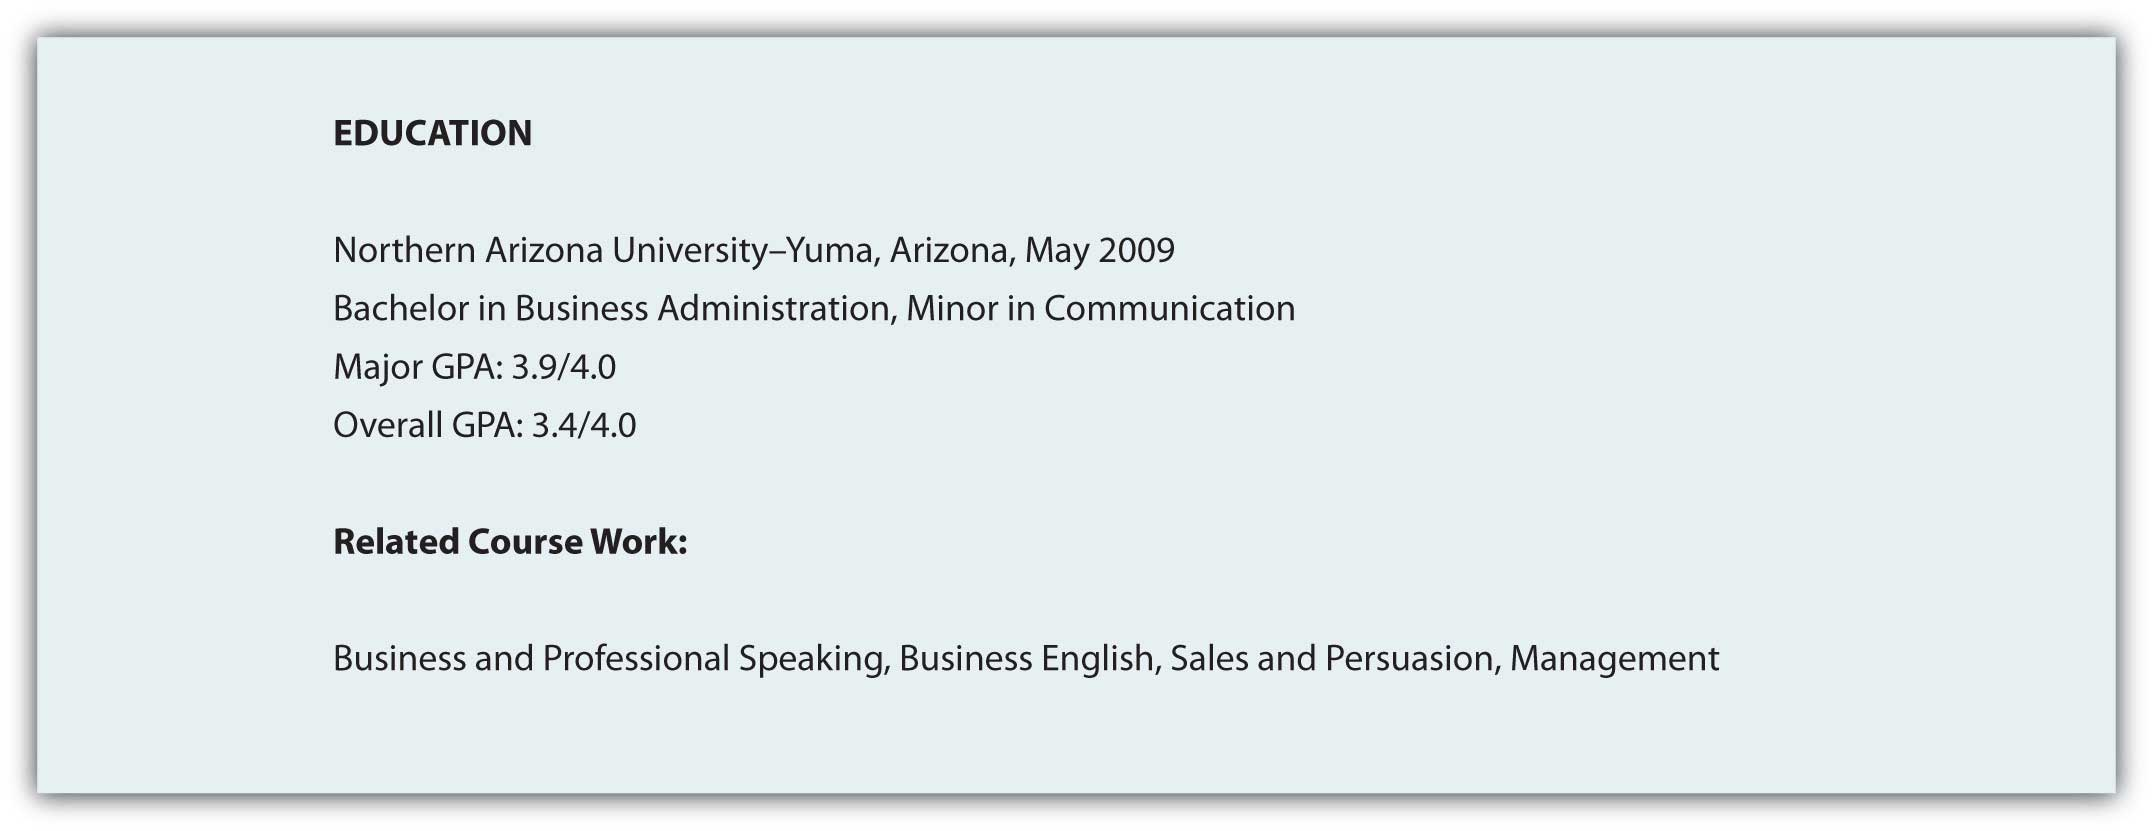 Education  Resume On Cardstock